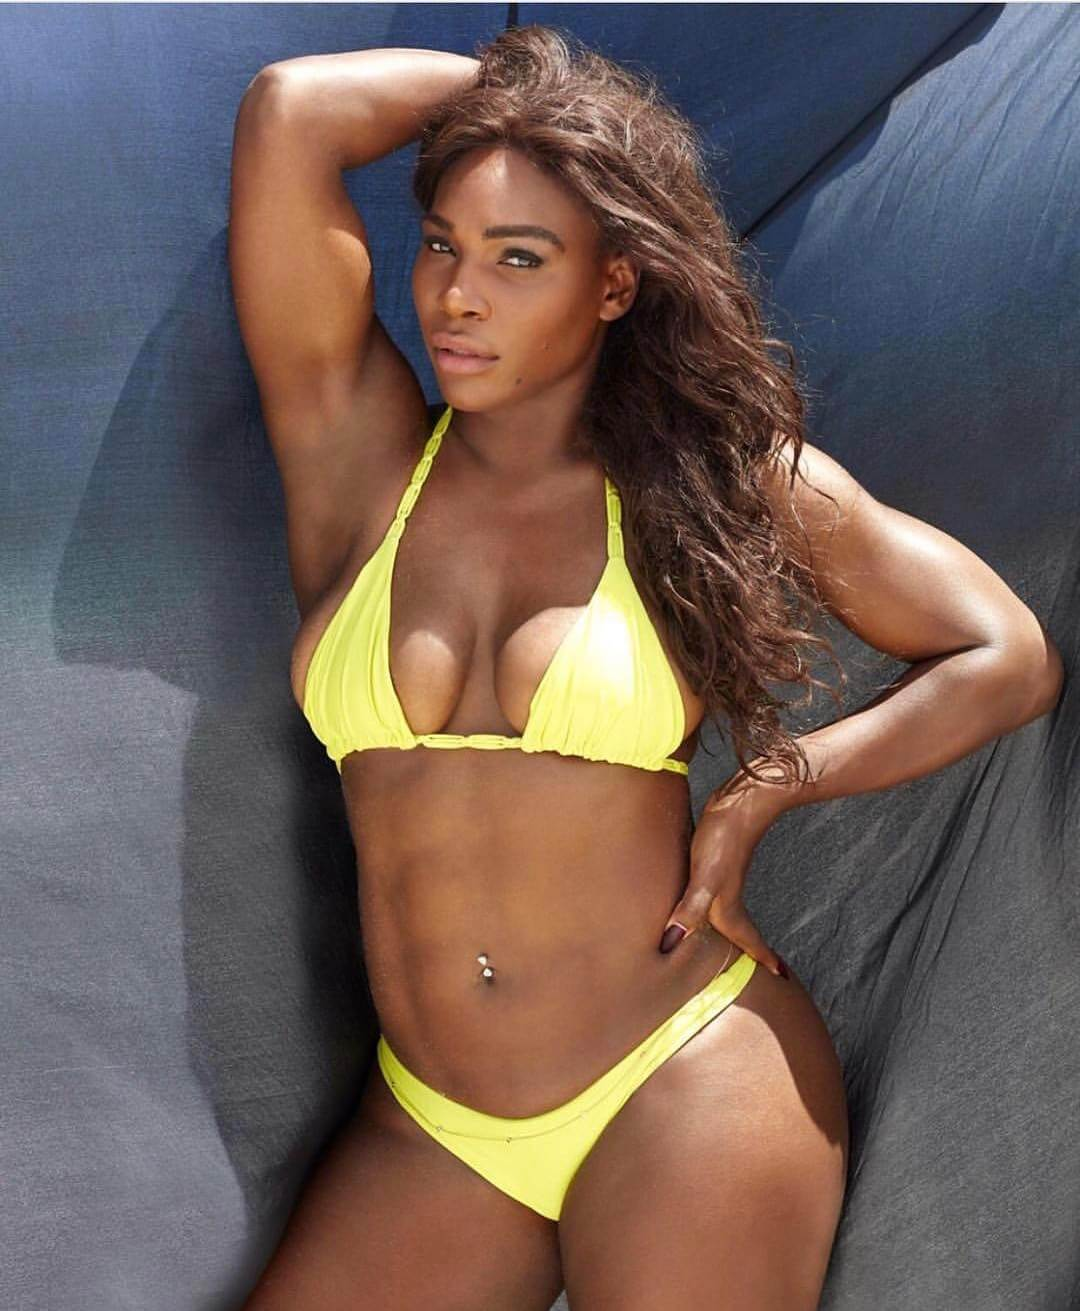 Serena Williams sexy boobs pic